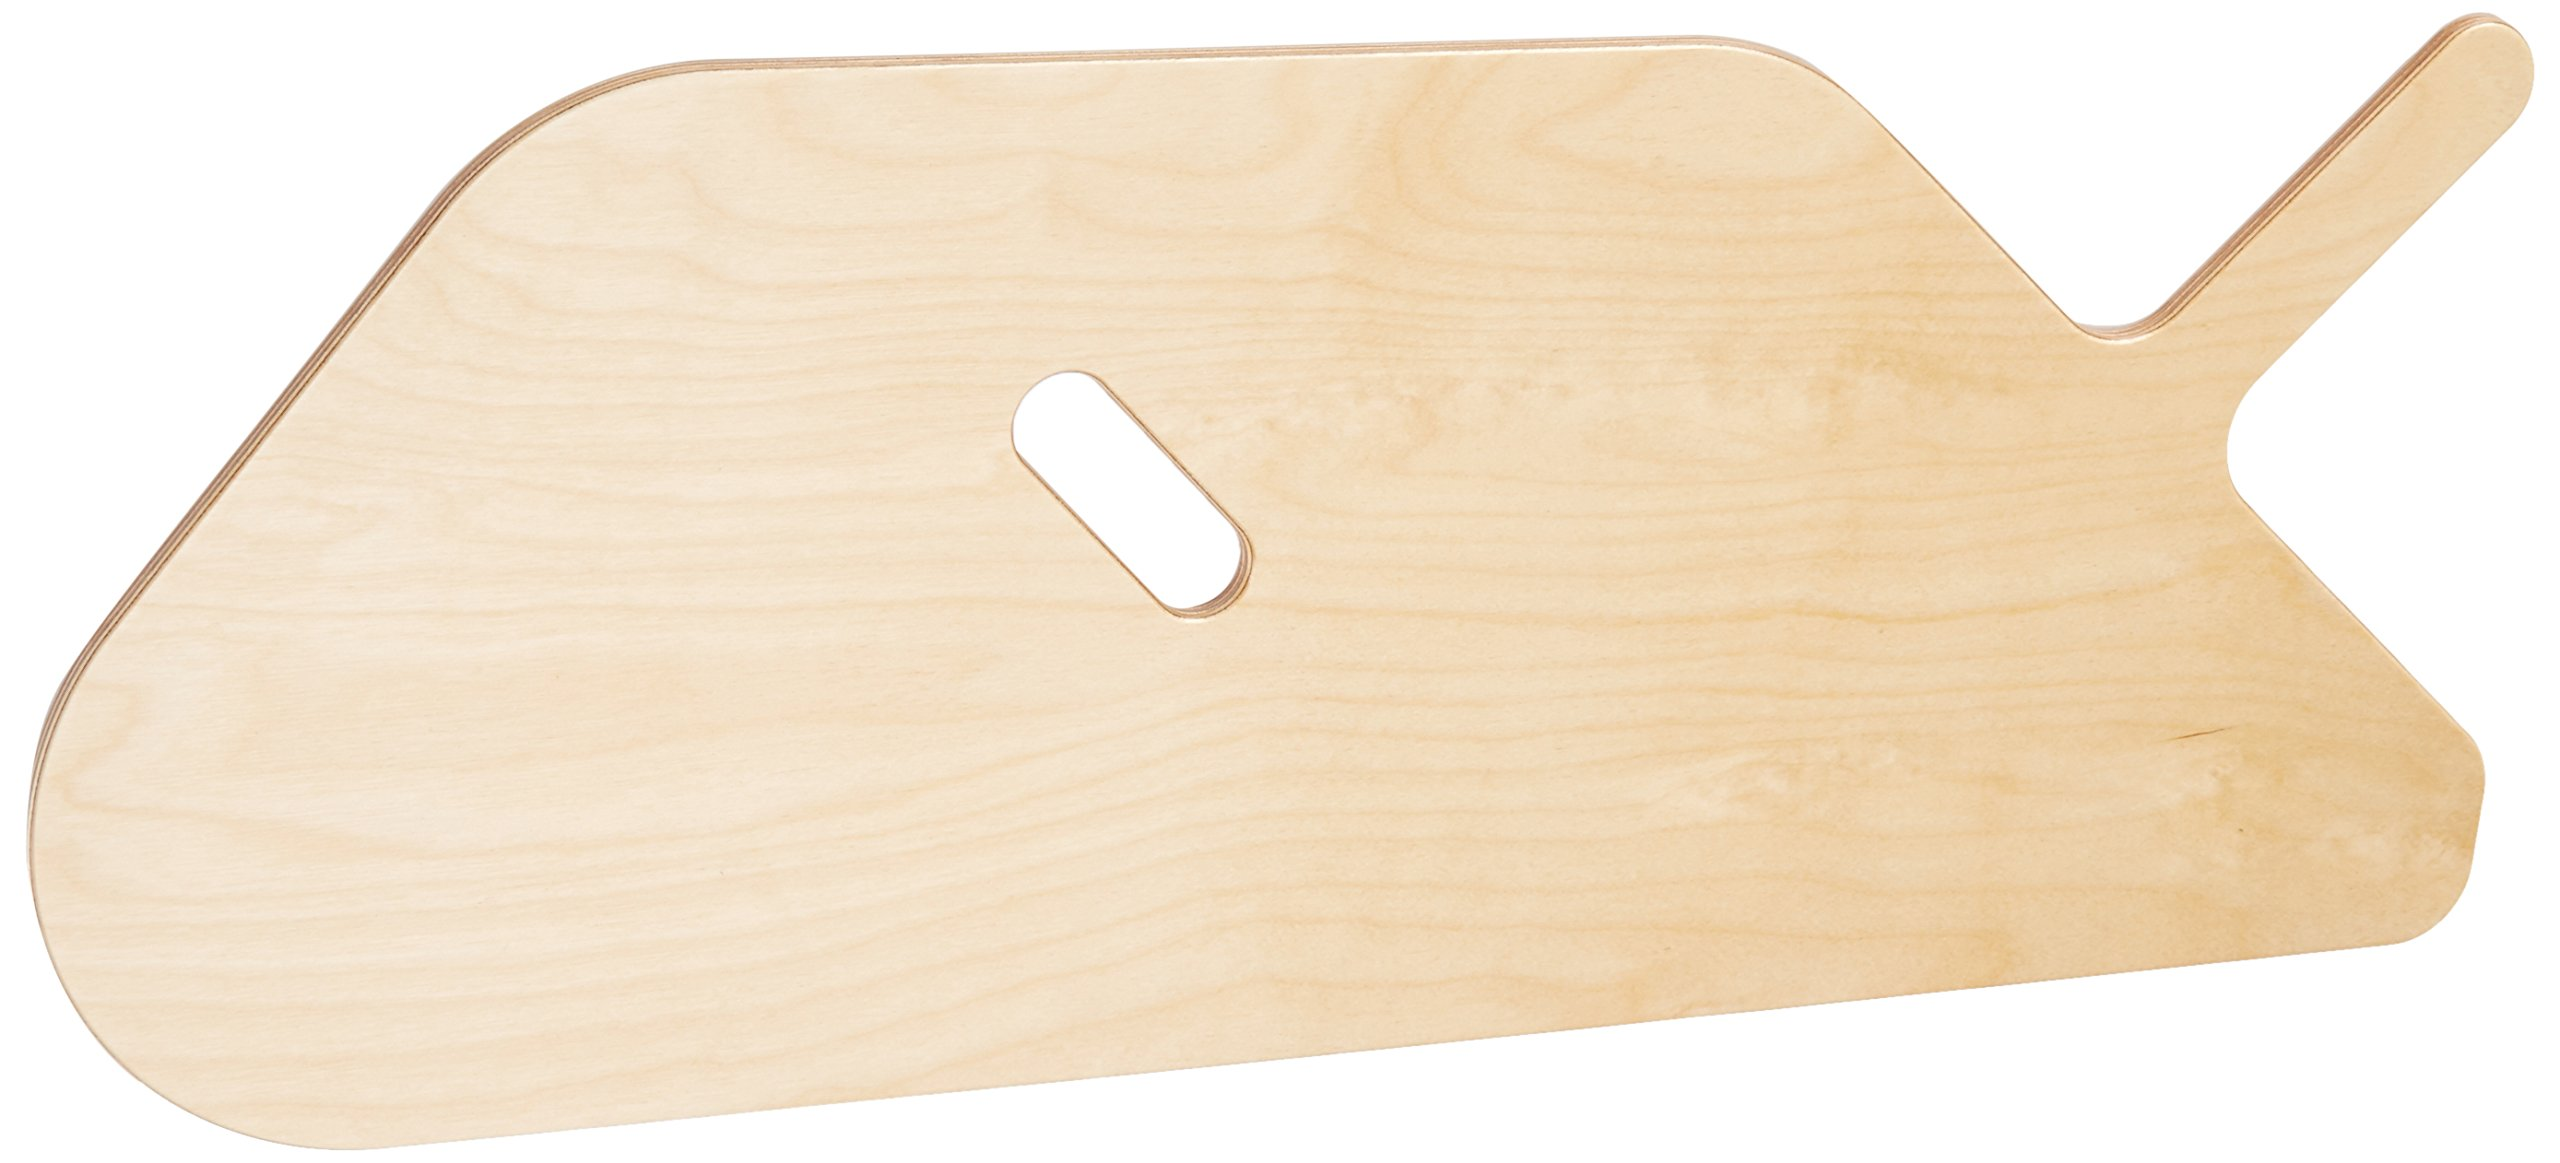 Sammons Preston Offset Sliding Board, Mobility Transfer Board for Wheelchair Users & Elderly, Birch Wooden Transferring Tool, Transport Slider for Wheelchairs, Cars, Beds, or Chairs